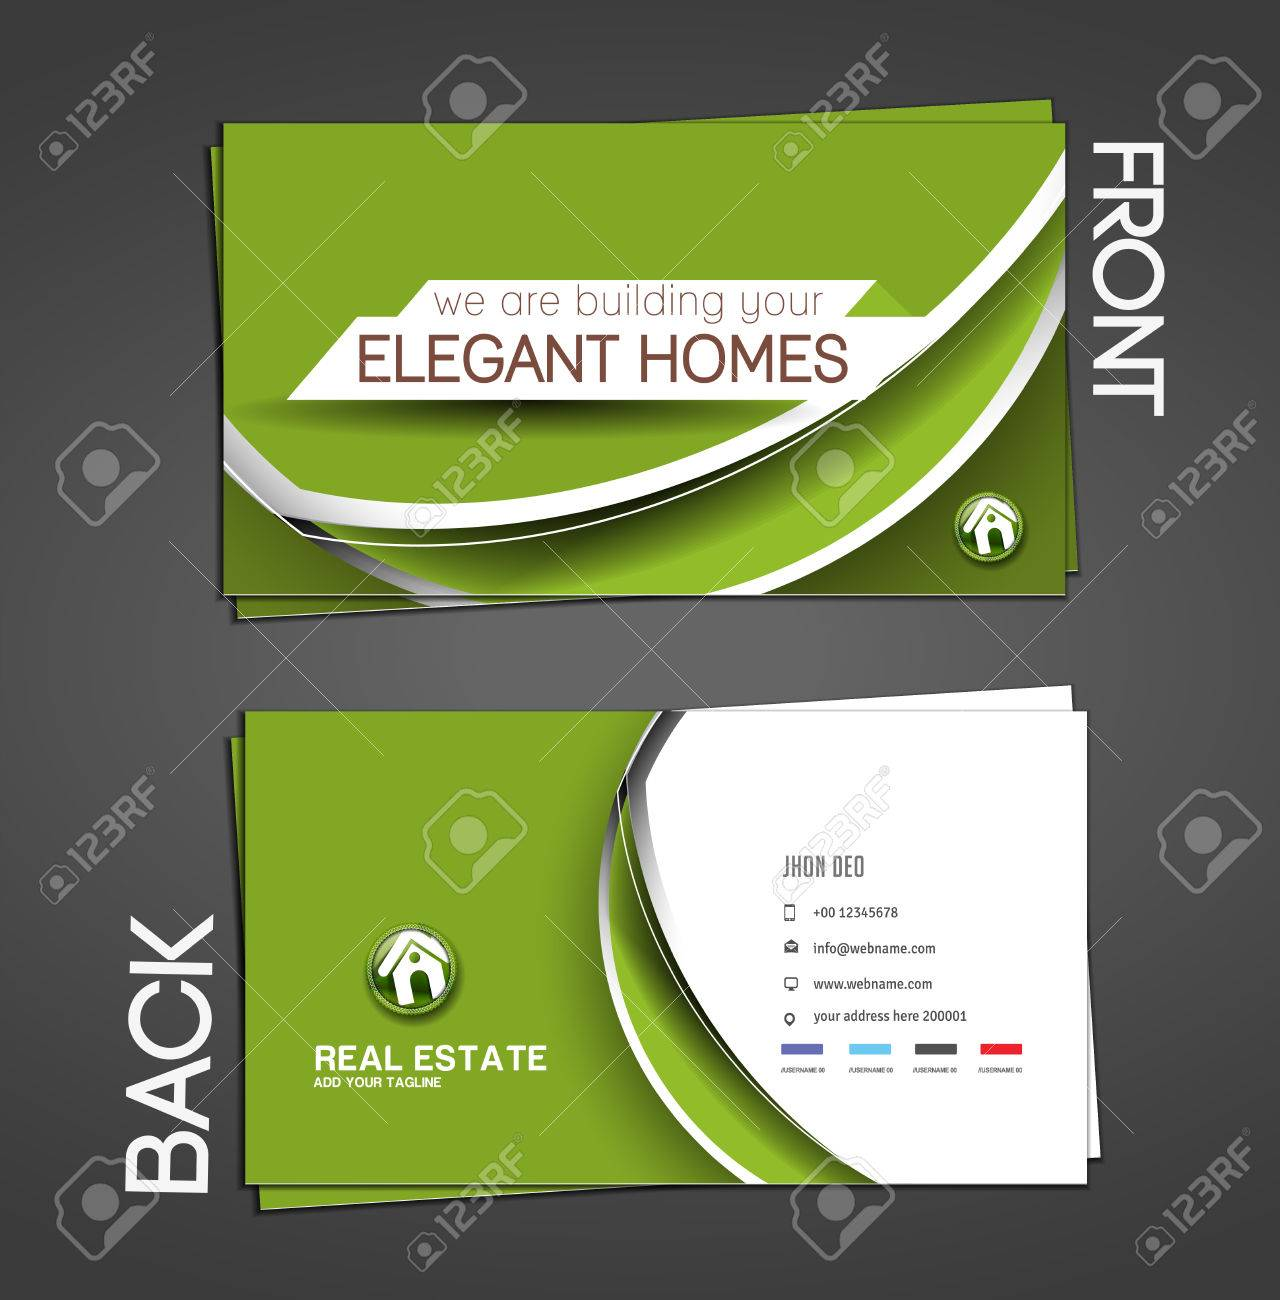 Real estate agent business card set template royalty free cliparts real estate agent business card set template stock vector 28394331 flashek